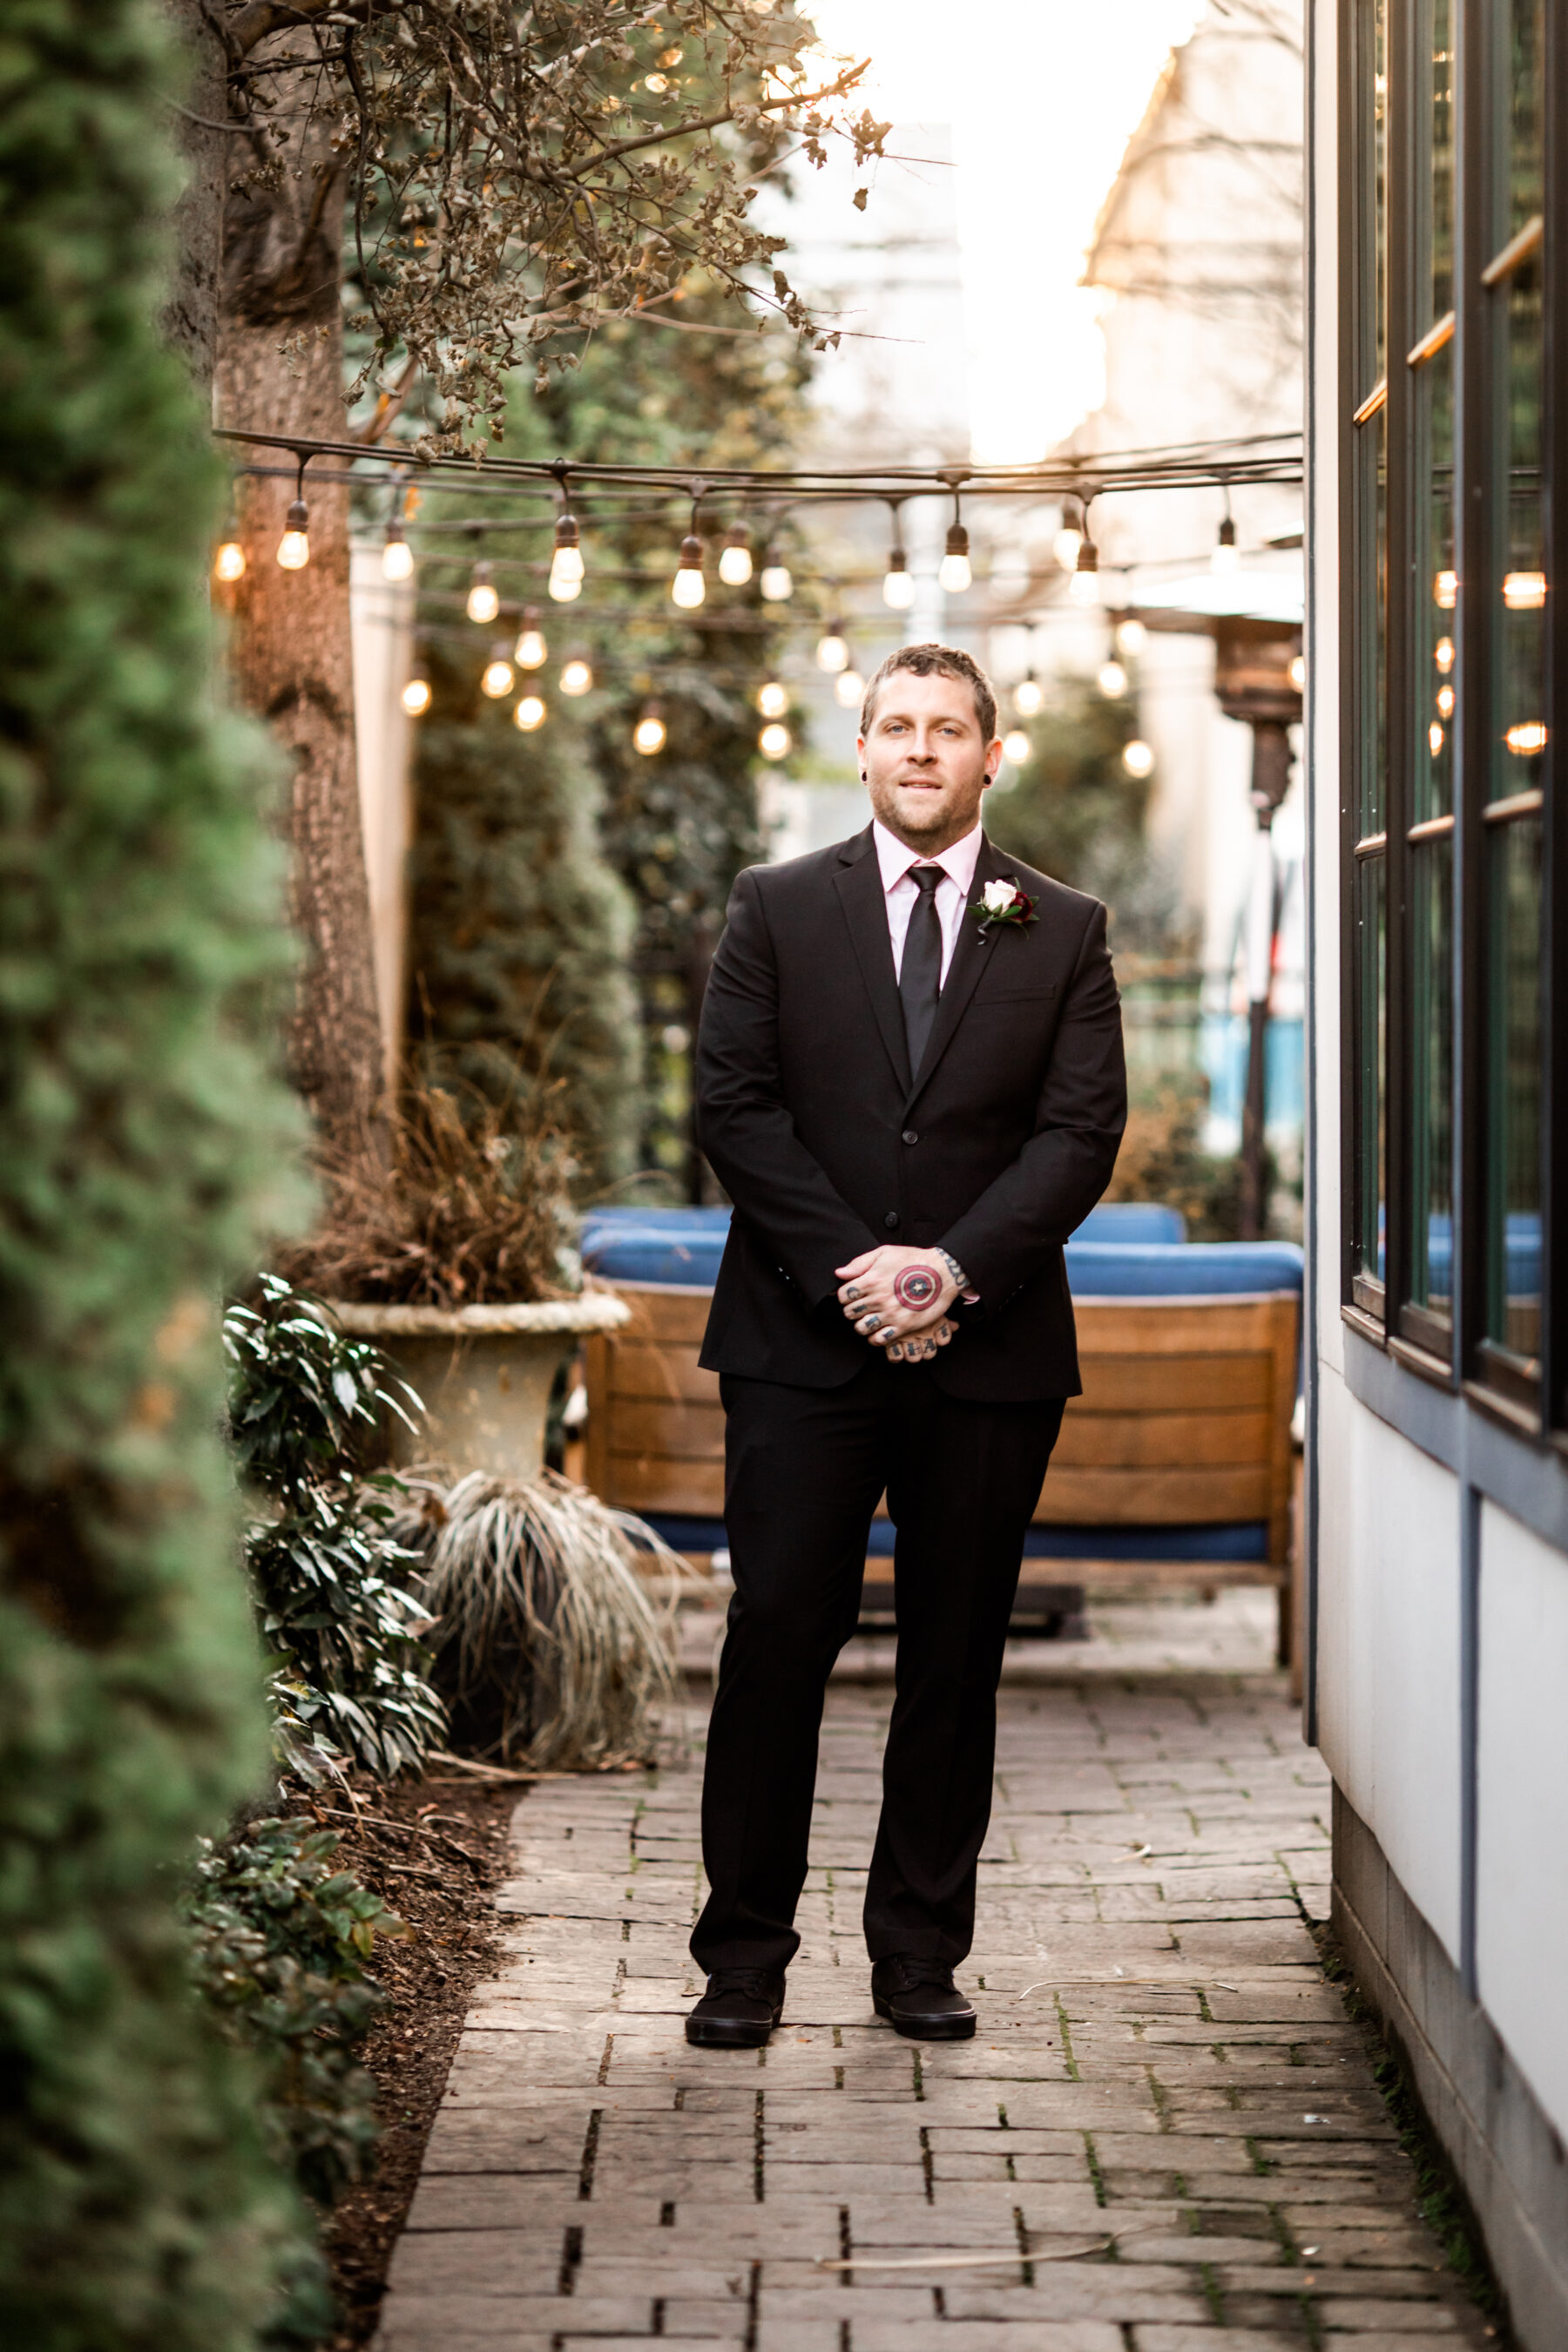 Grooms portrait: Nashville Wish Upon a Wedding captured by Nyk + Cali Photography featured on Nashville Bride Guide